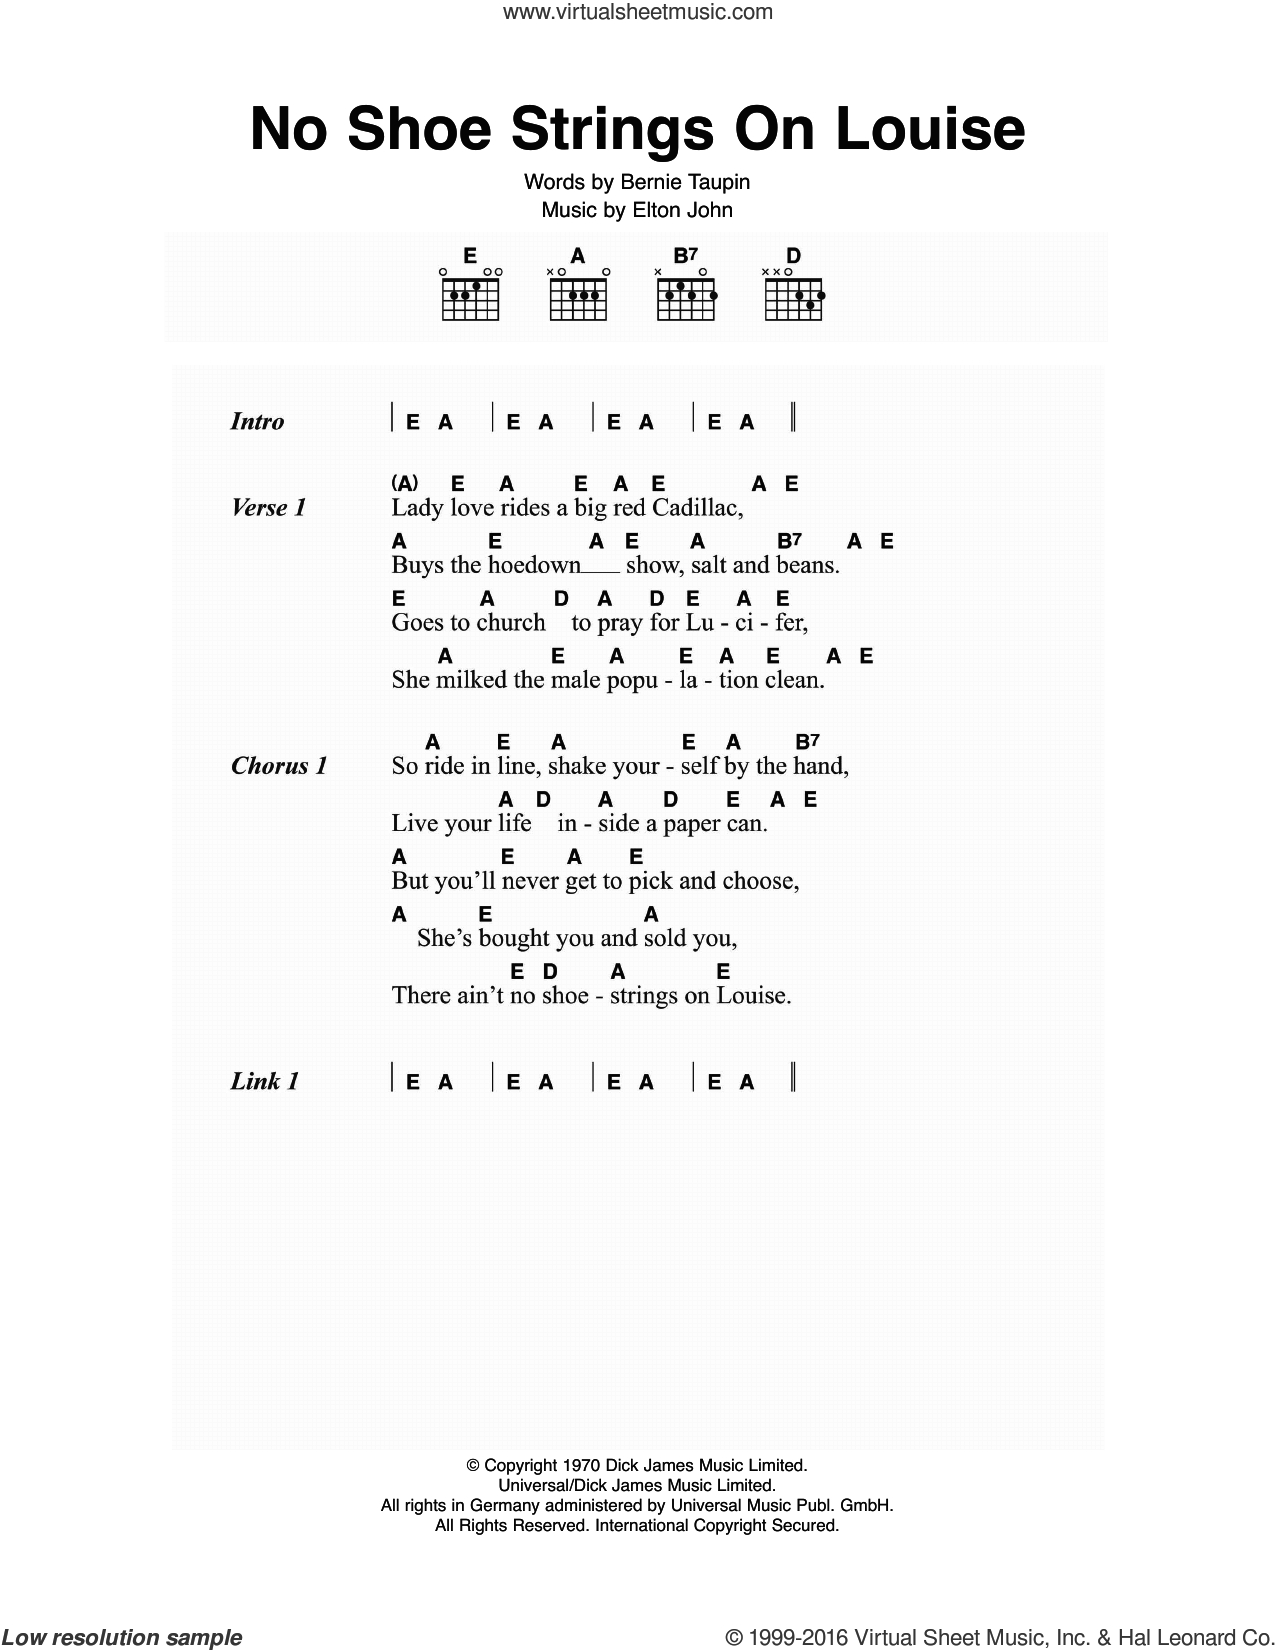 No Shoe Strings On Louise sheet music for guitar (chords) by Elton John and Bernie Taupin, intermediate